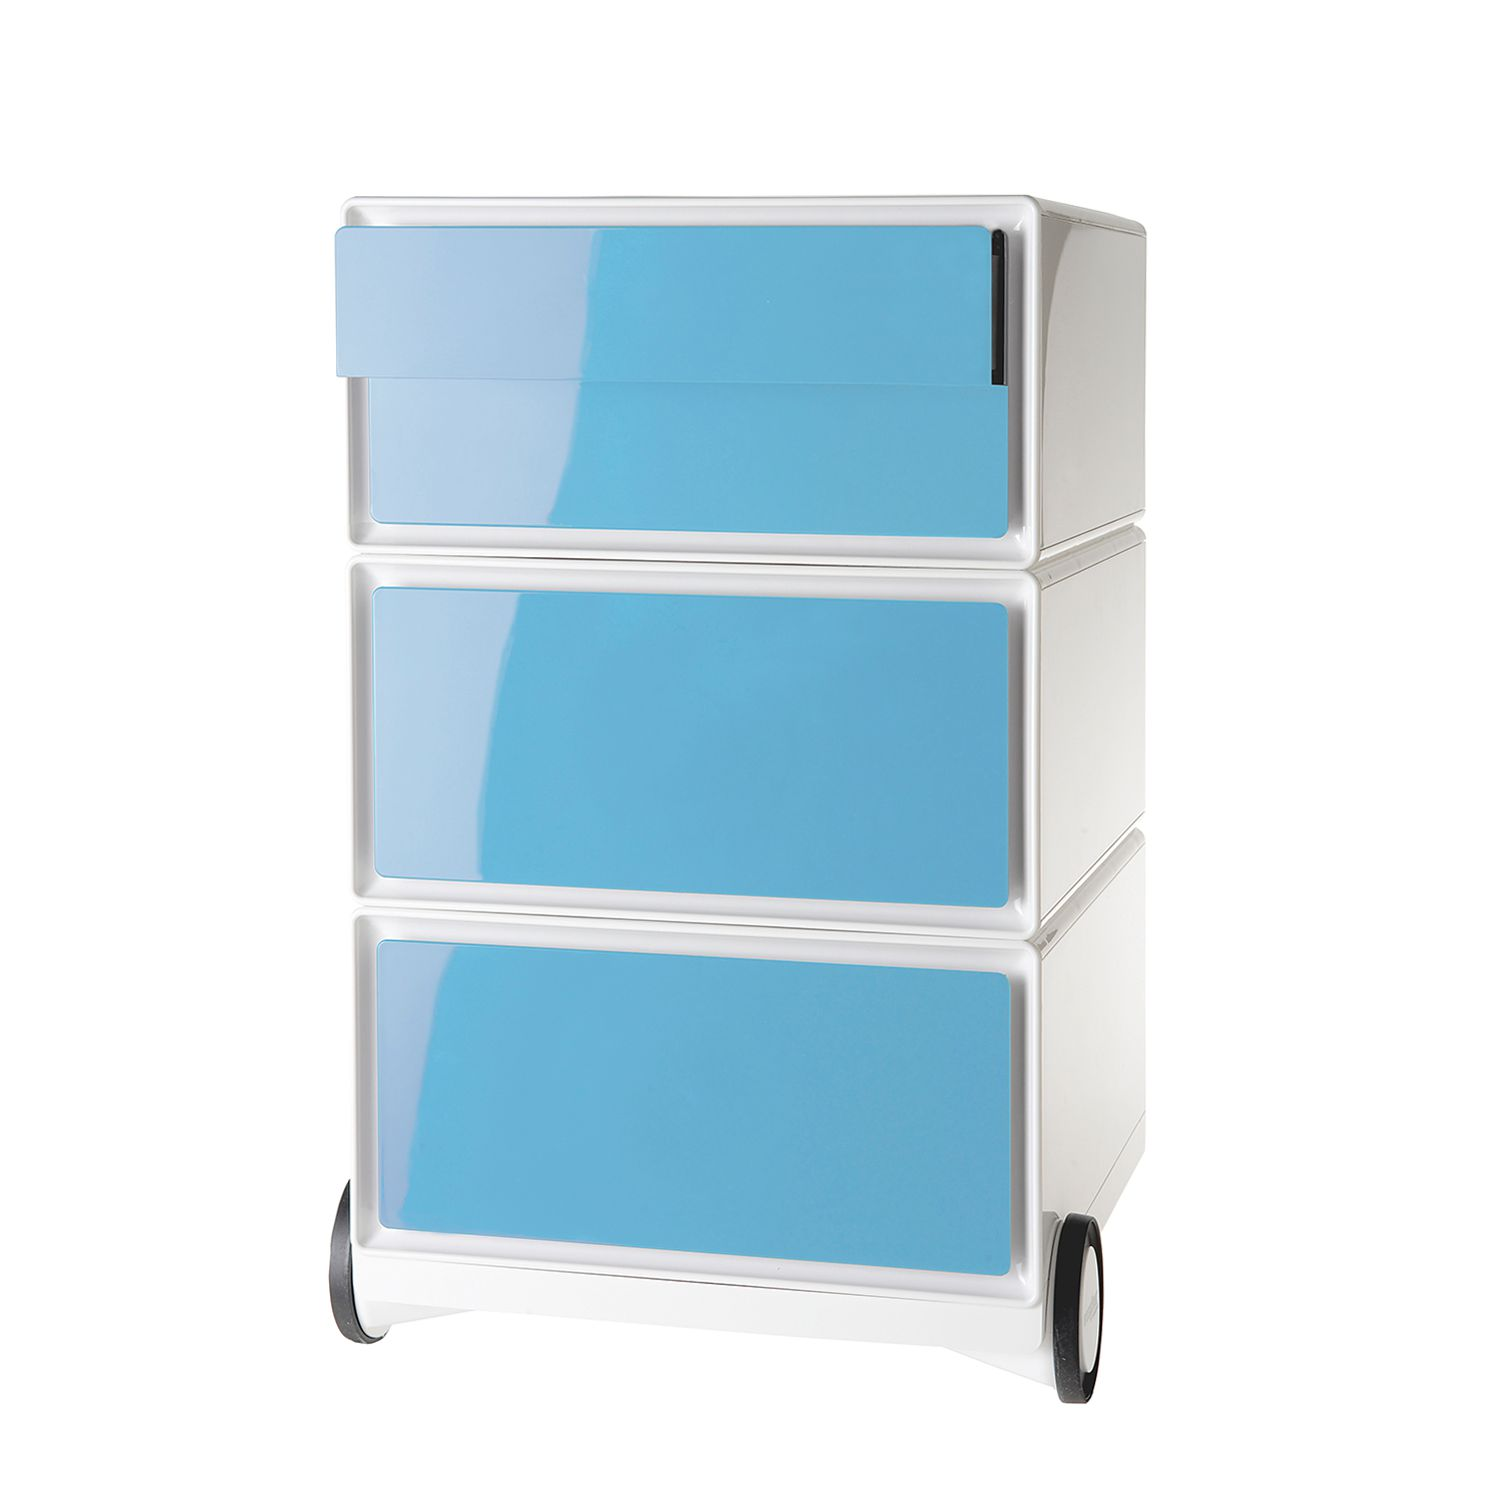 Rollcontainer easyBox II - Weiß / Hellblau, easy Office und Paperflow